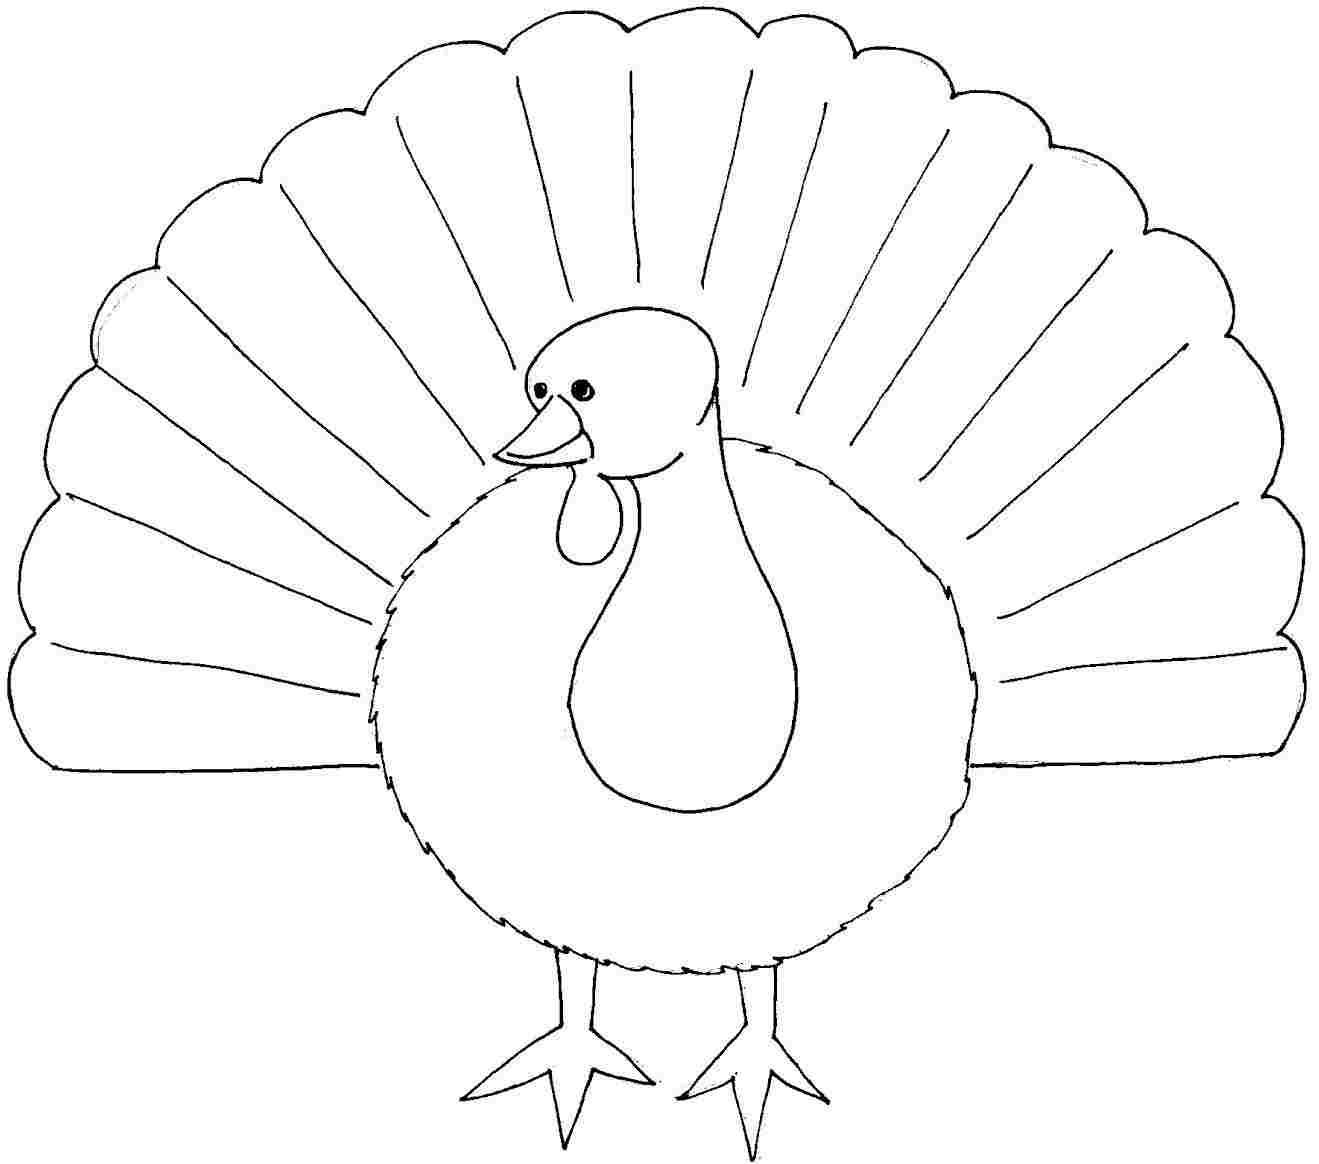 Printable Free Thanksgiving Turkey Colouring Pages For